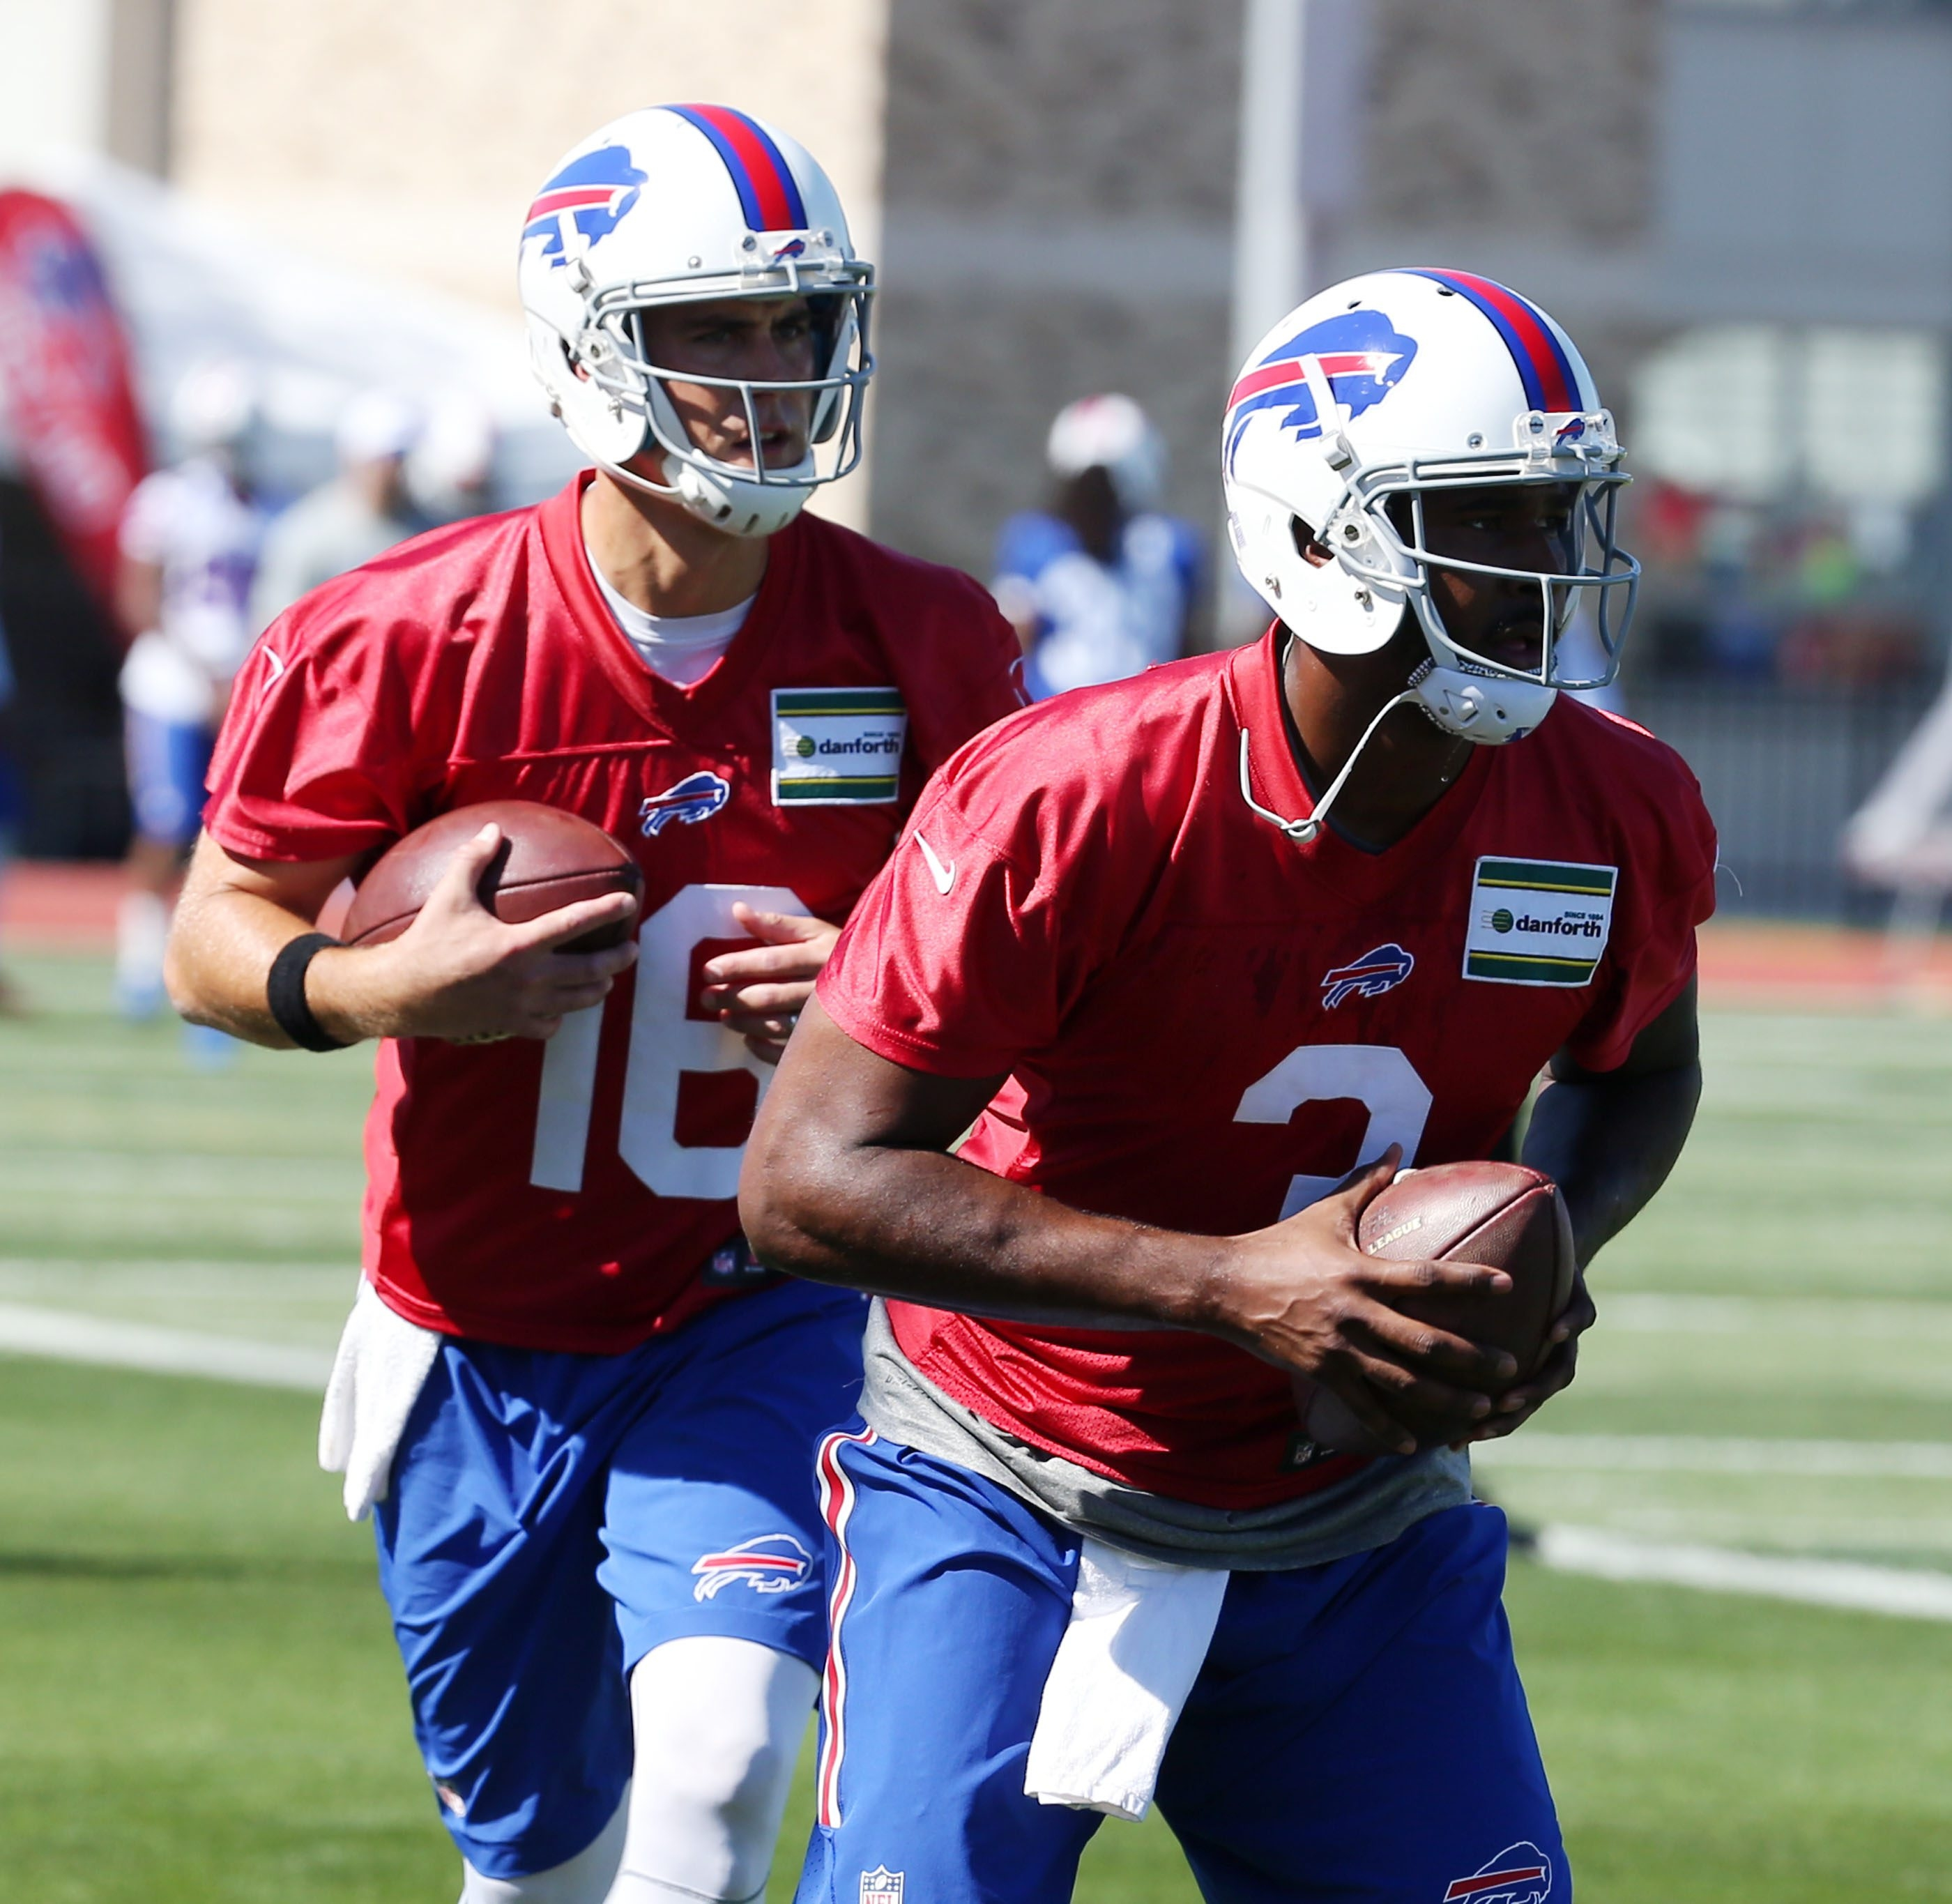 Buffalo Bills quarterback Matt Cassel (16) and Buffalo Bills quarterback EJ Manuel (3) work on their footwork during a drill on the first day of training camp at St. John Fisher College in Pittsford,NY on Friday, July 31, 2015.  (James P. McCoy/ Buffalo News)